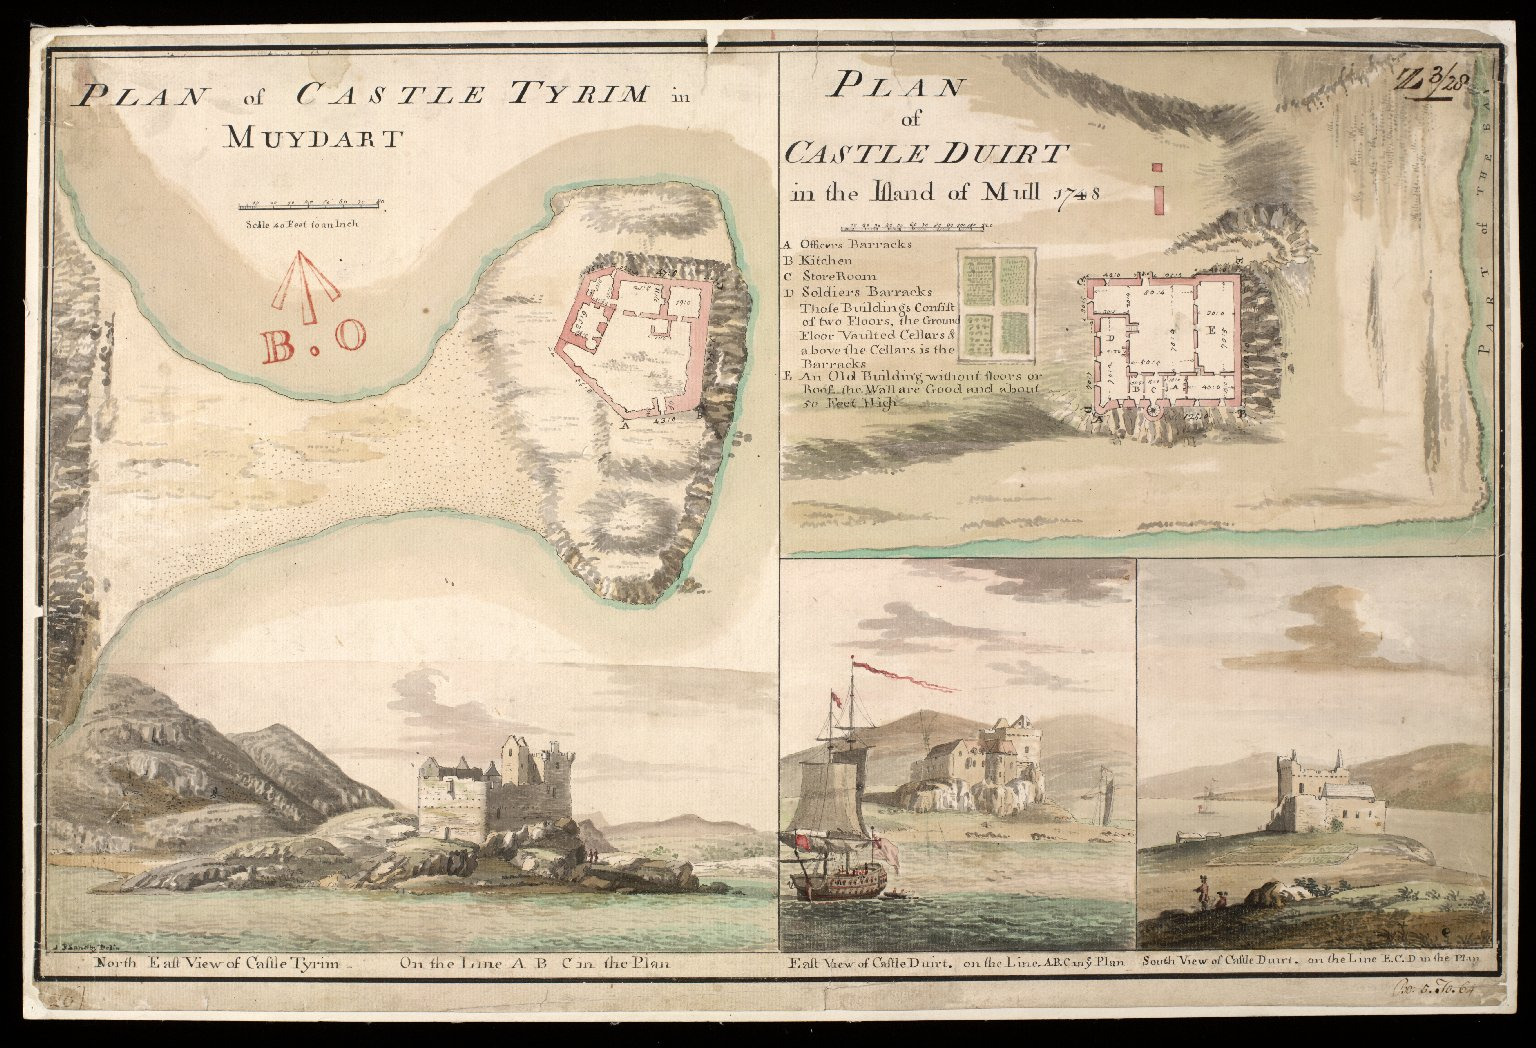 Plan of Castle Tyrim [i.e. Tioram] in Muydart [i.e. Moidart] : plan of Castle Duirt [i.e. Duart] in the Island of Mull 1748 [1 of 1]